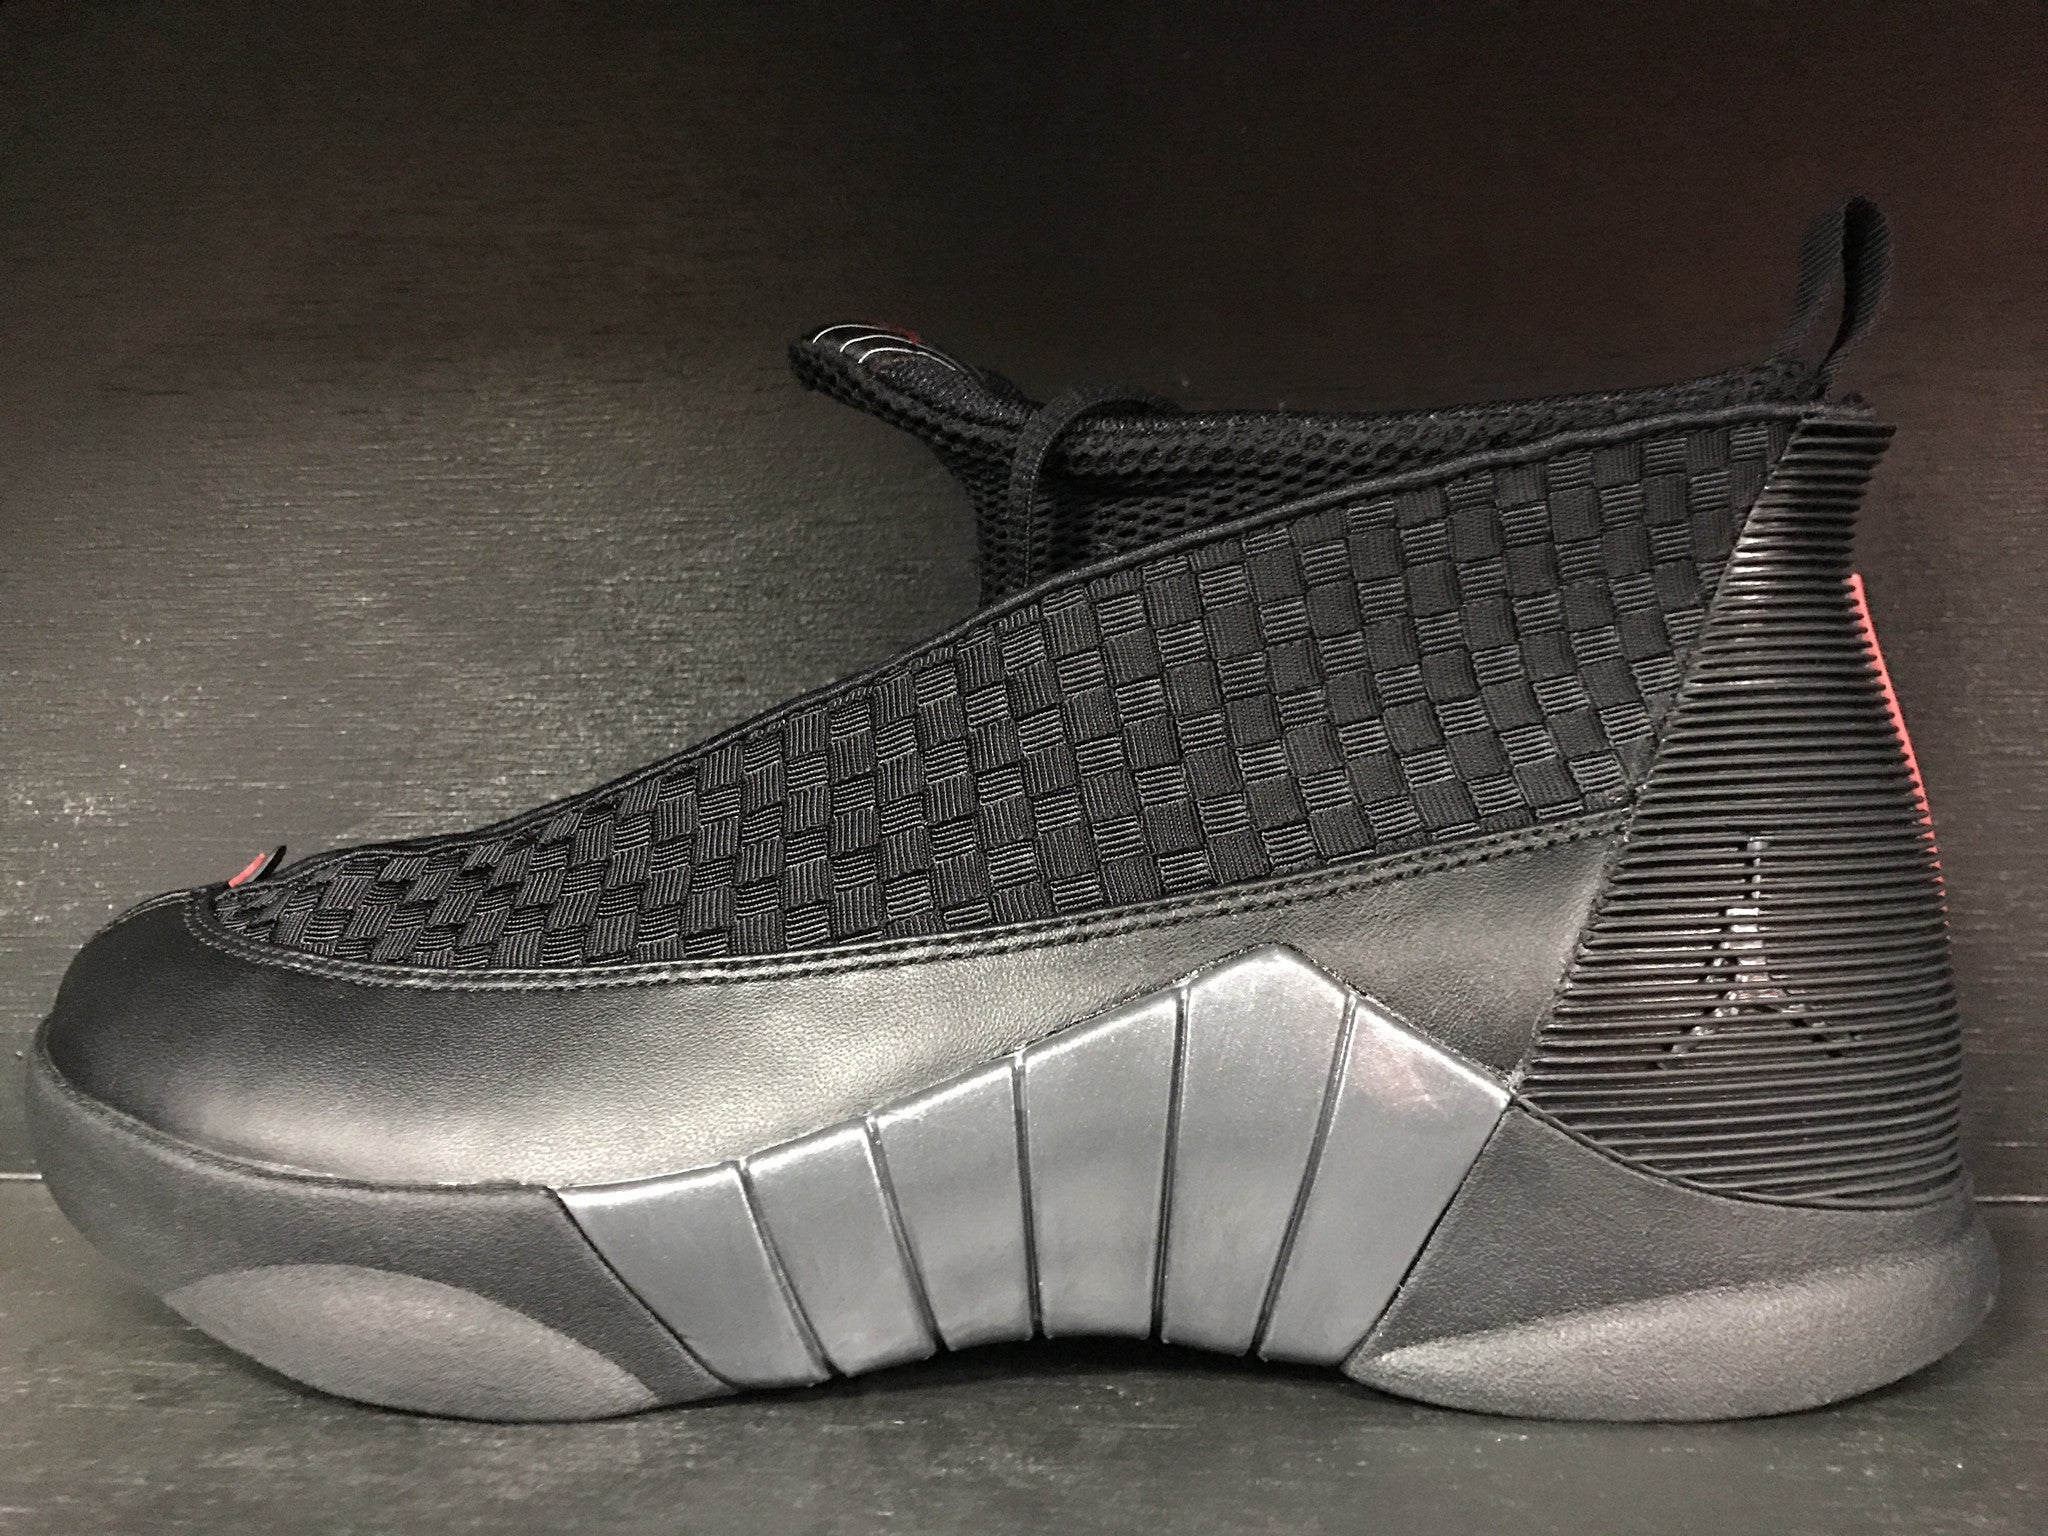 Air Jordan 15 Retro 'Stealth'